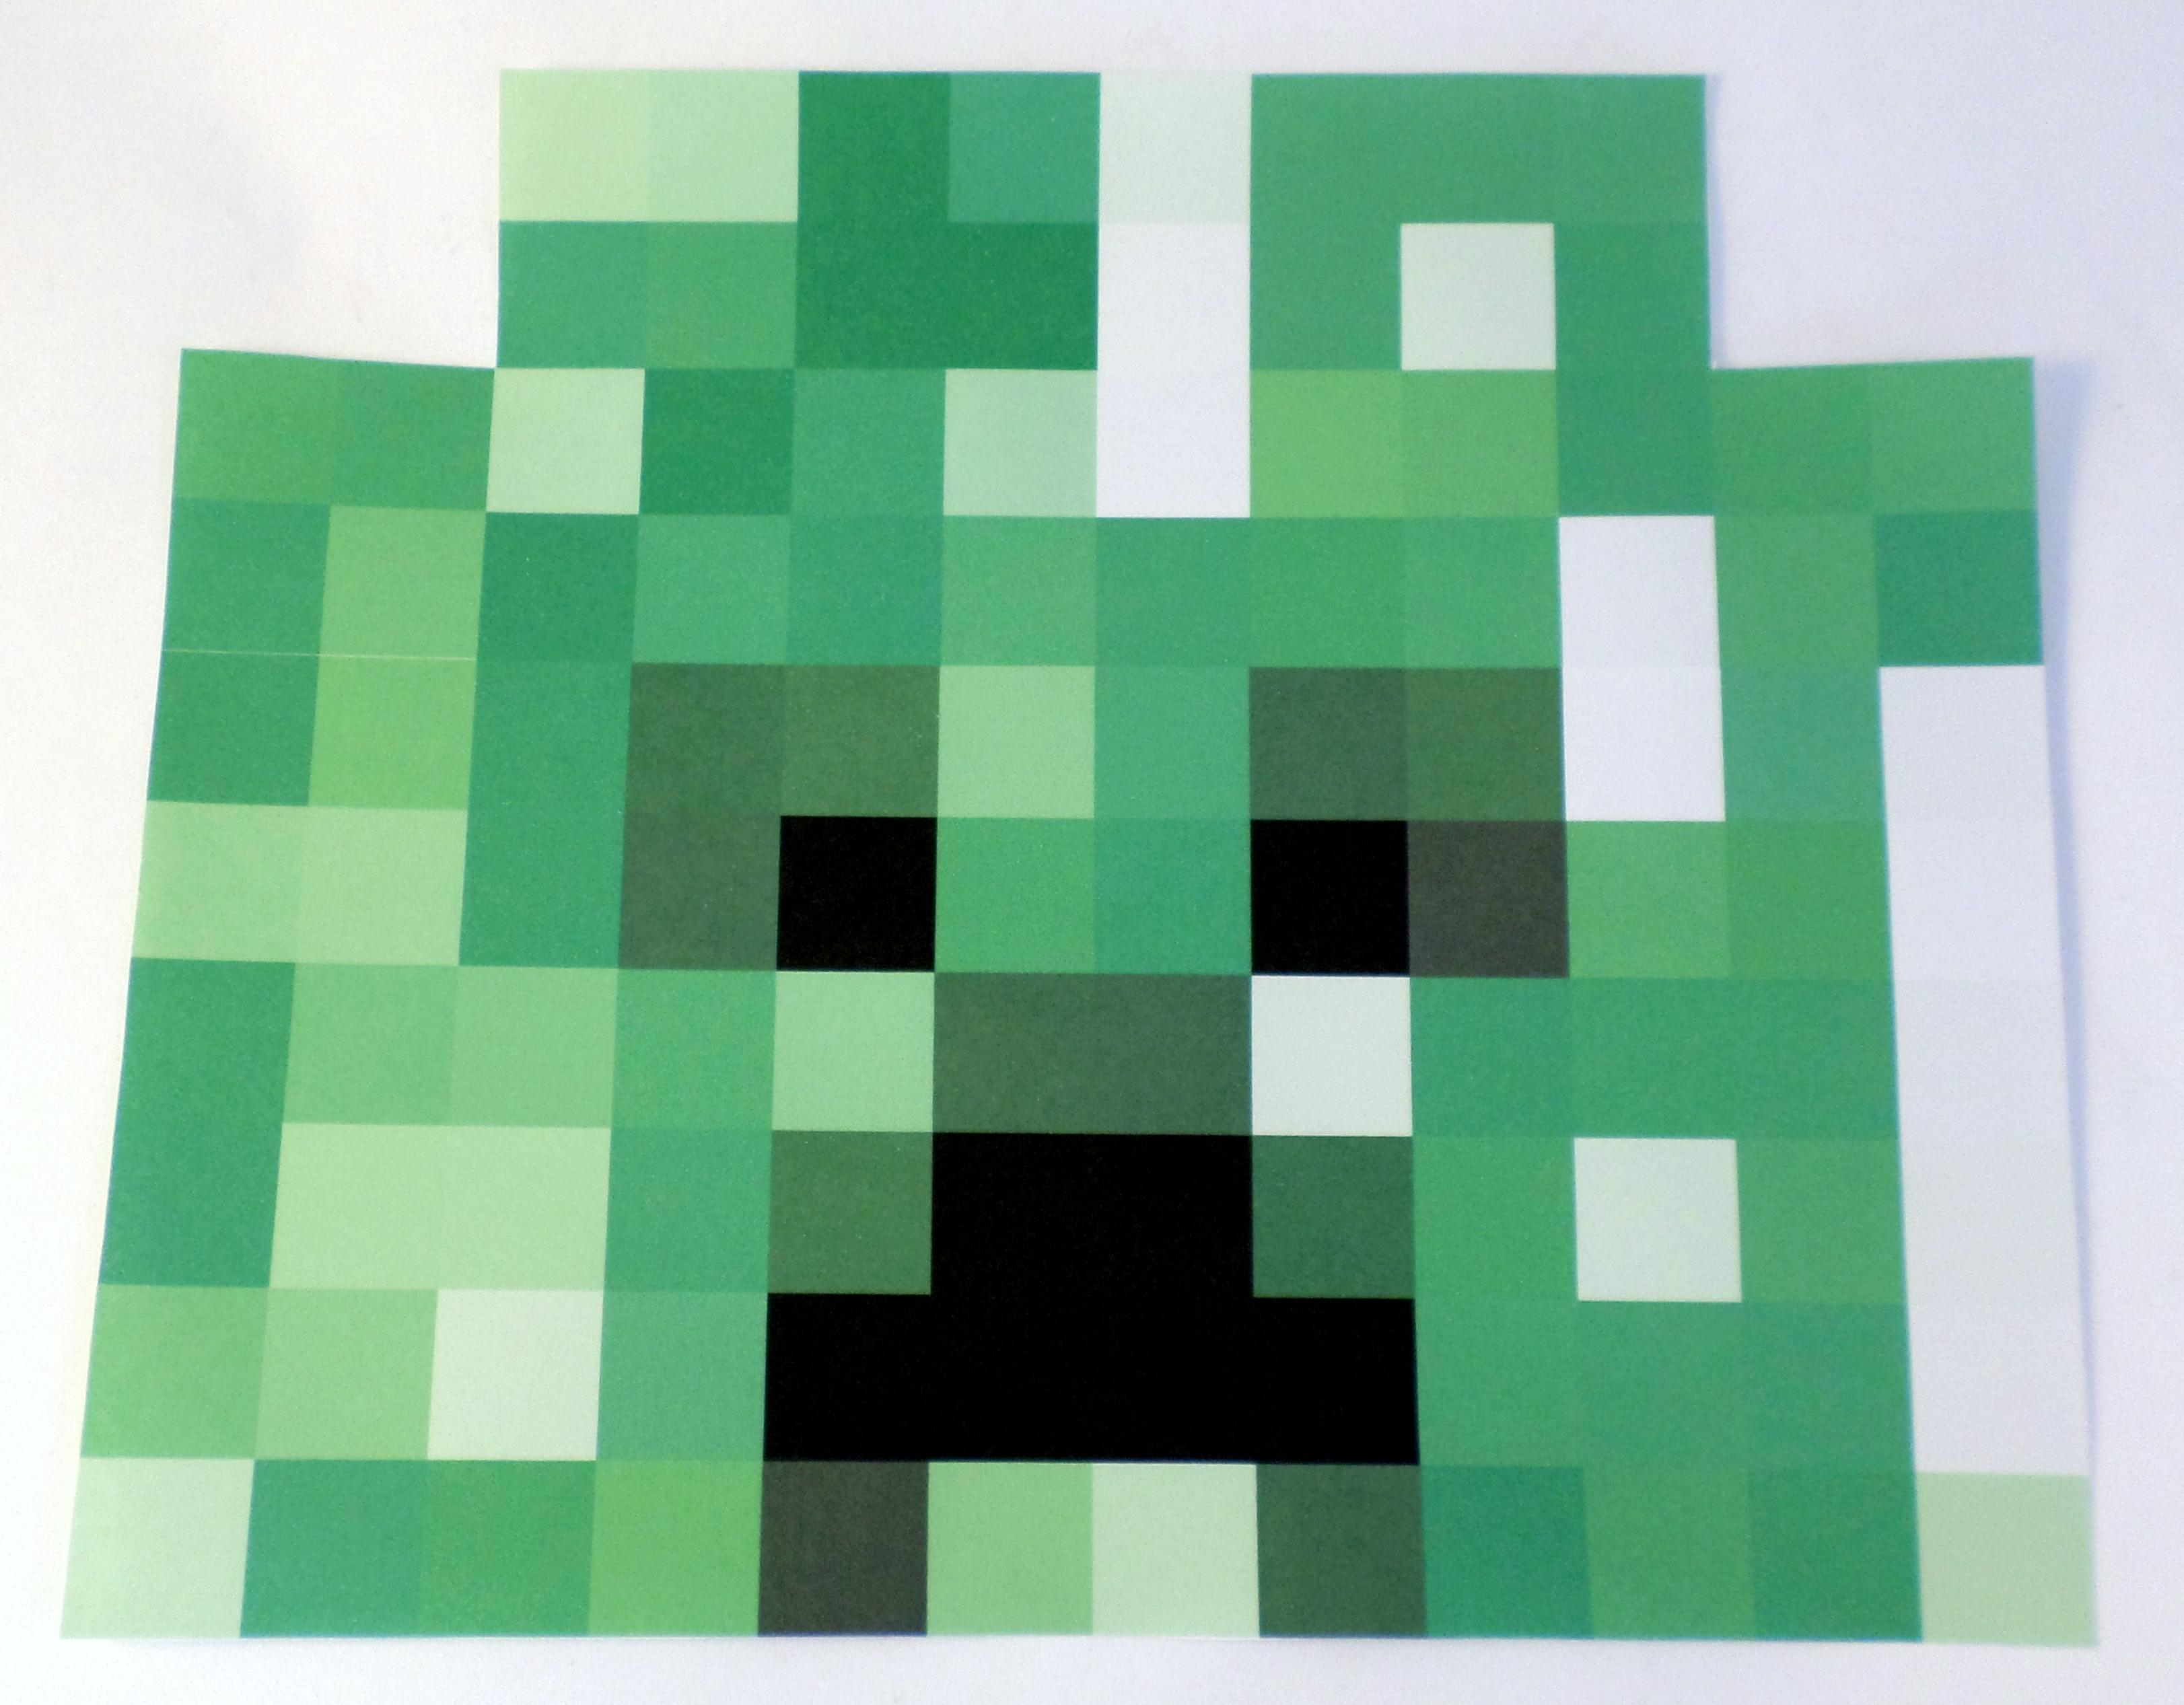 Picture of Putting the Creeper Skin on the Head